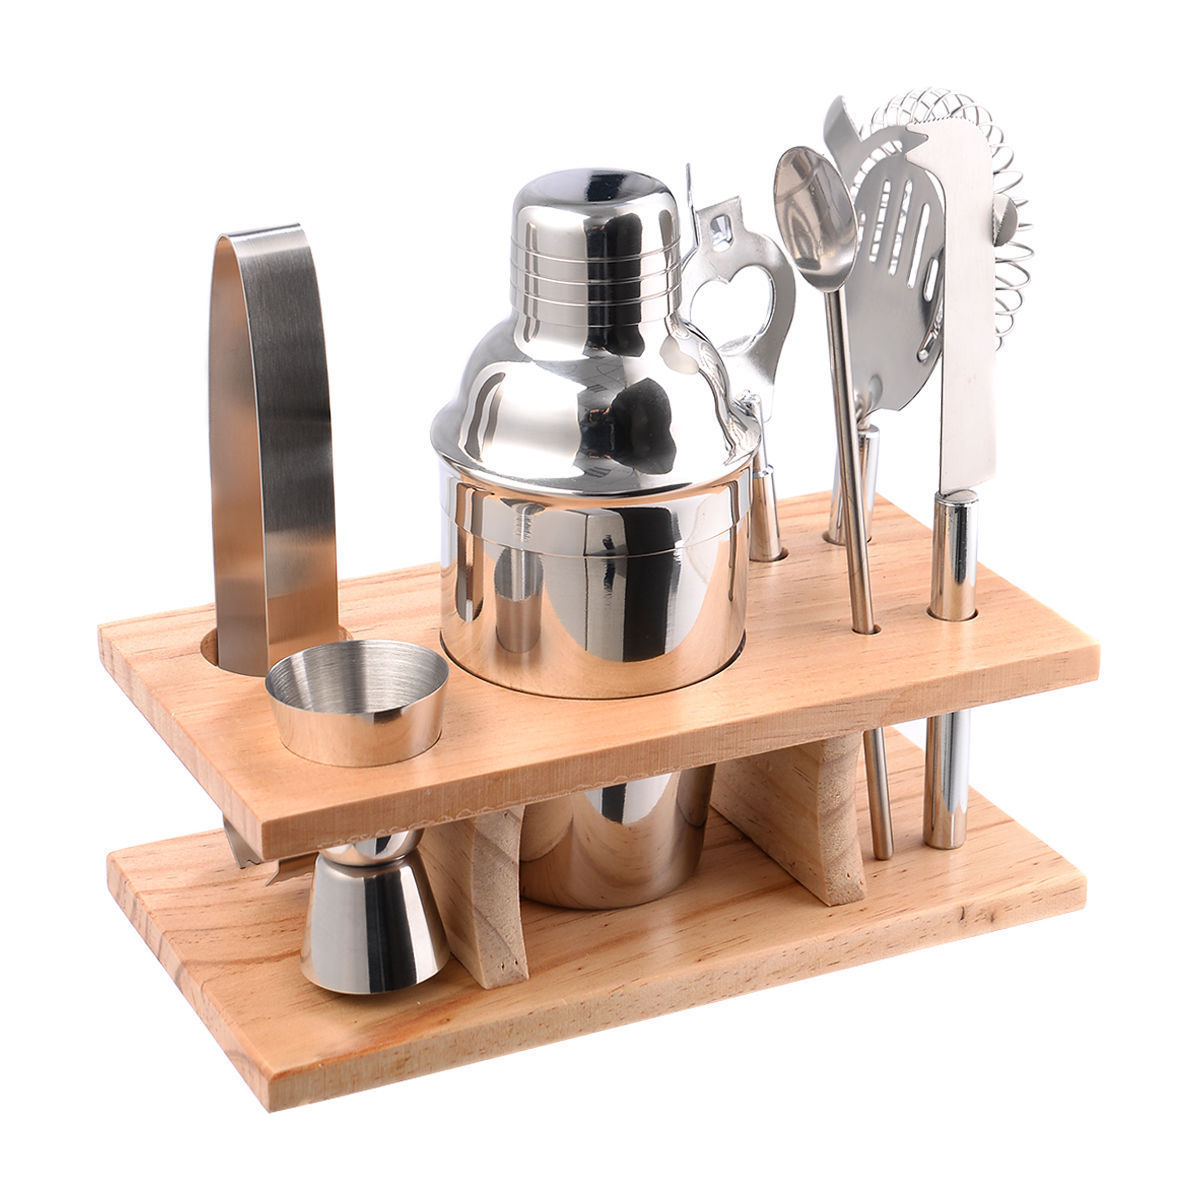 Costway Stainless Steel Cocktail Shaker Mixer Drink Bartender Martini Tools Bar Set Kit by Costway